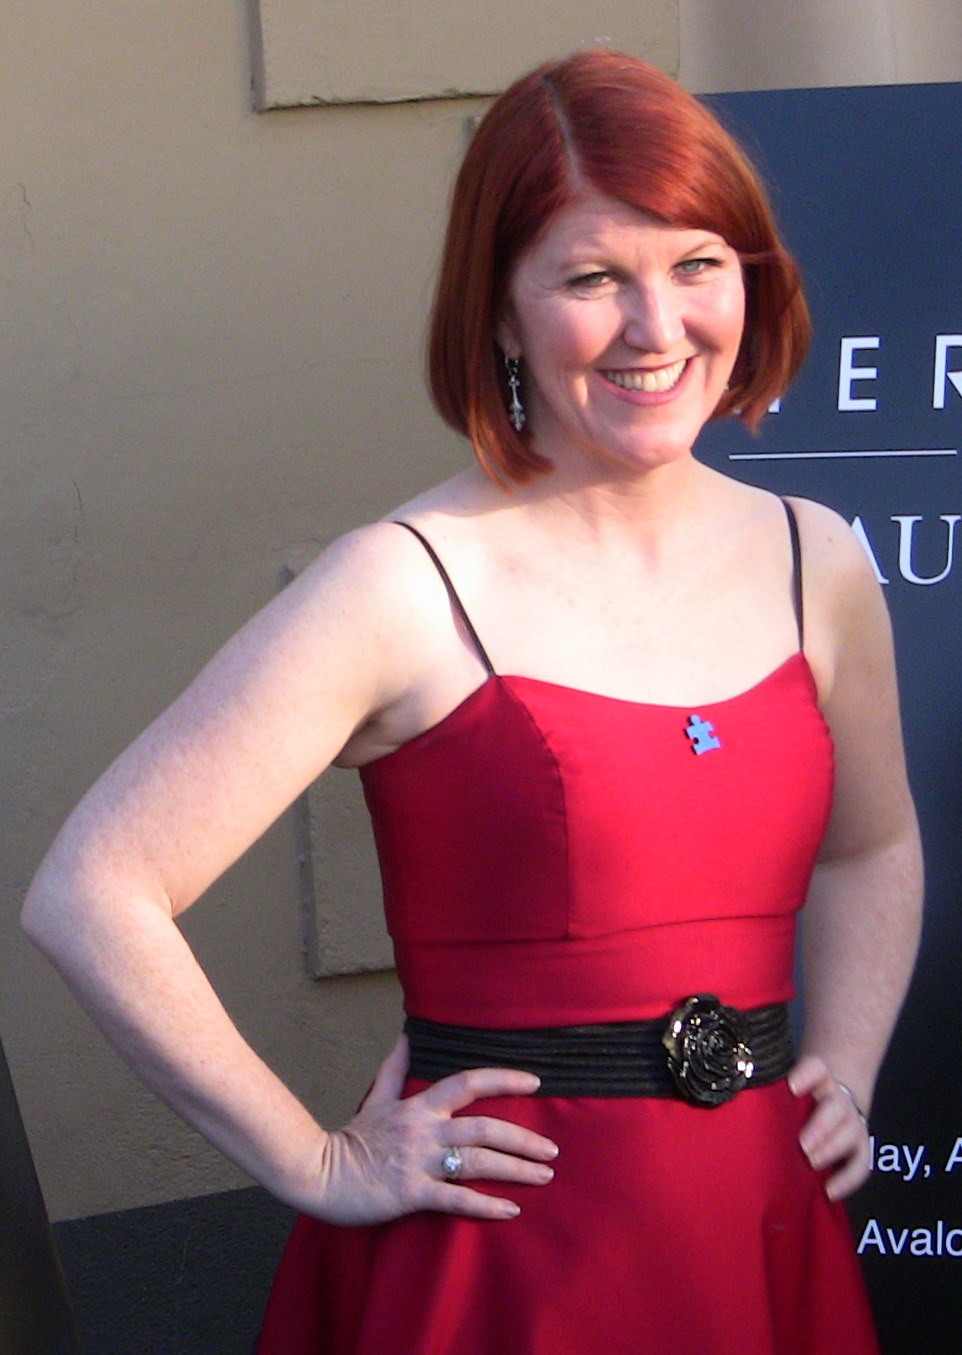 kate flannery twin sisterkate flannery face, kate flannery young, kate flannery stand up, kate flannery twin sister, kate flannery interview, kate flannery twitter, kate flannery net worth, kate flannery husband, kate flannery imdb, kate flannery married, kate flannery shaved head, kate flannery feet, kate flannery instagram, kate flannery crossfit, kate flannery bio, kate flannery family